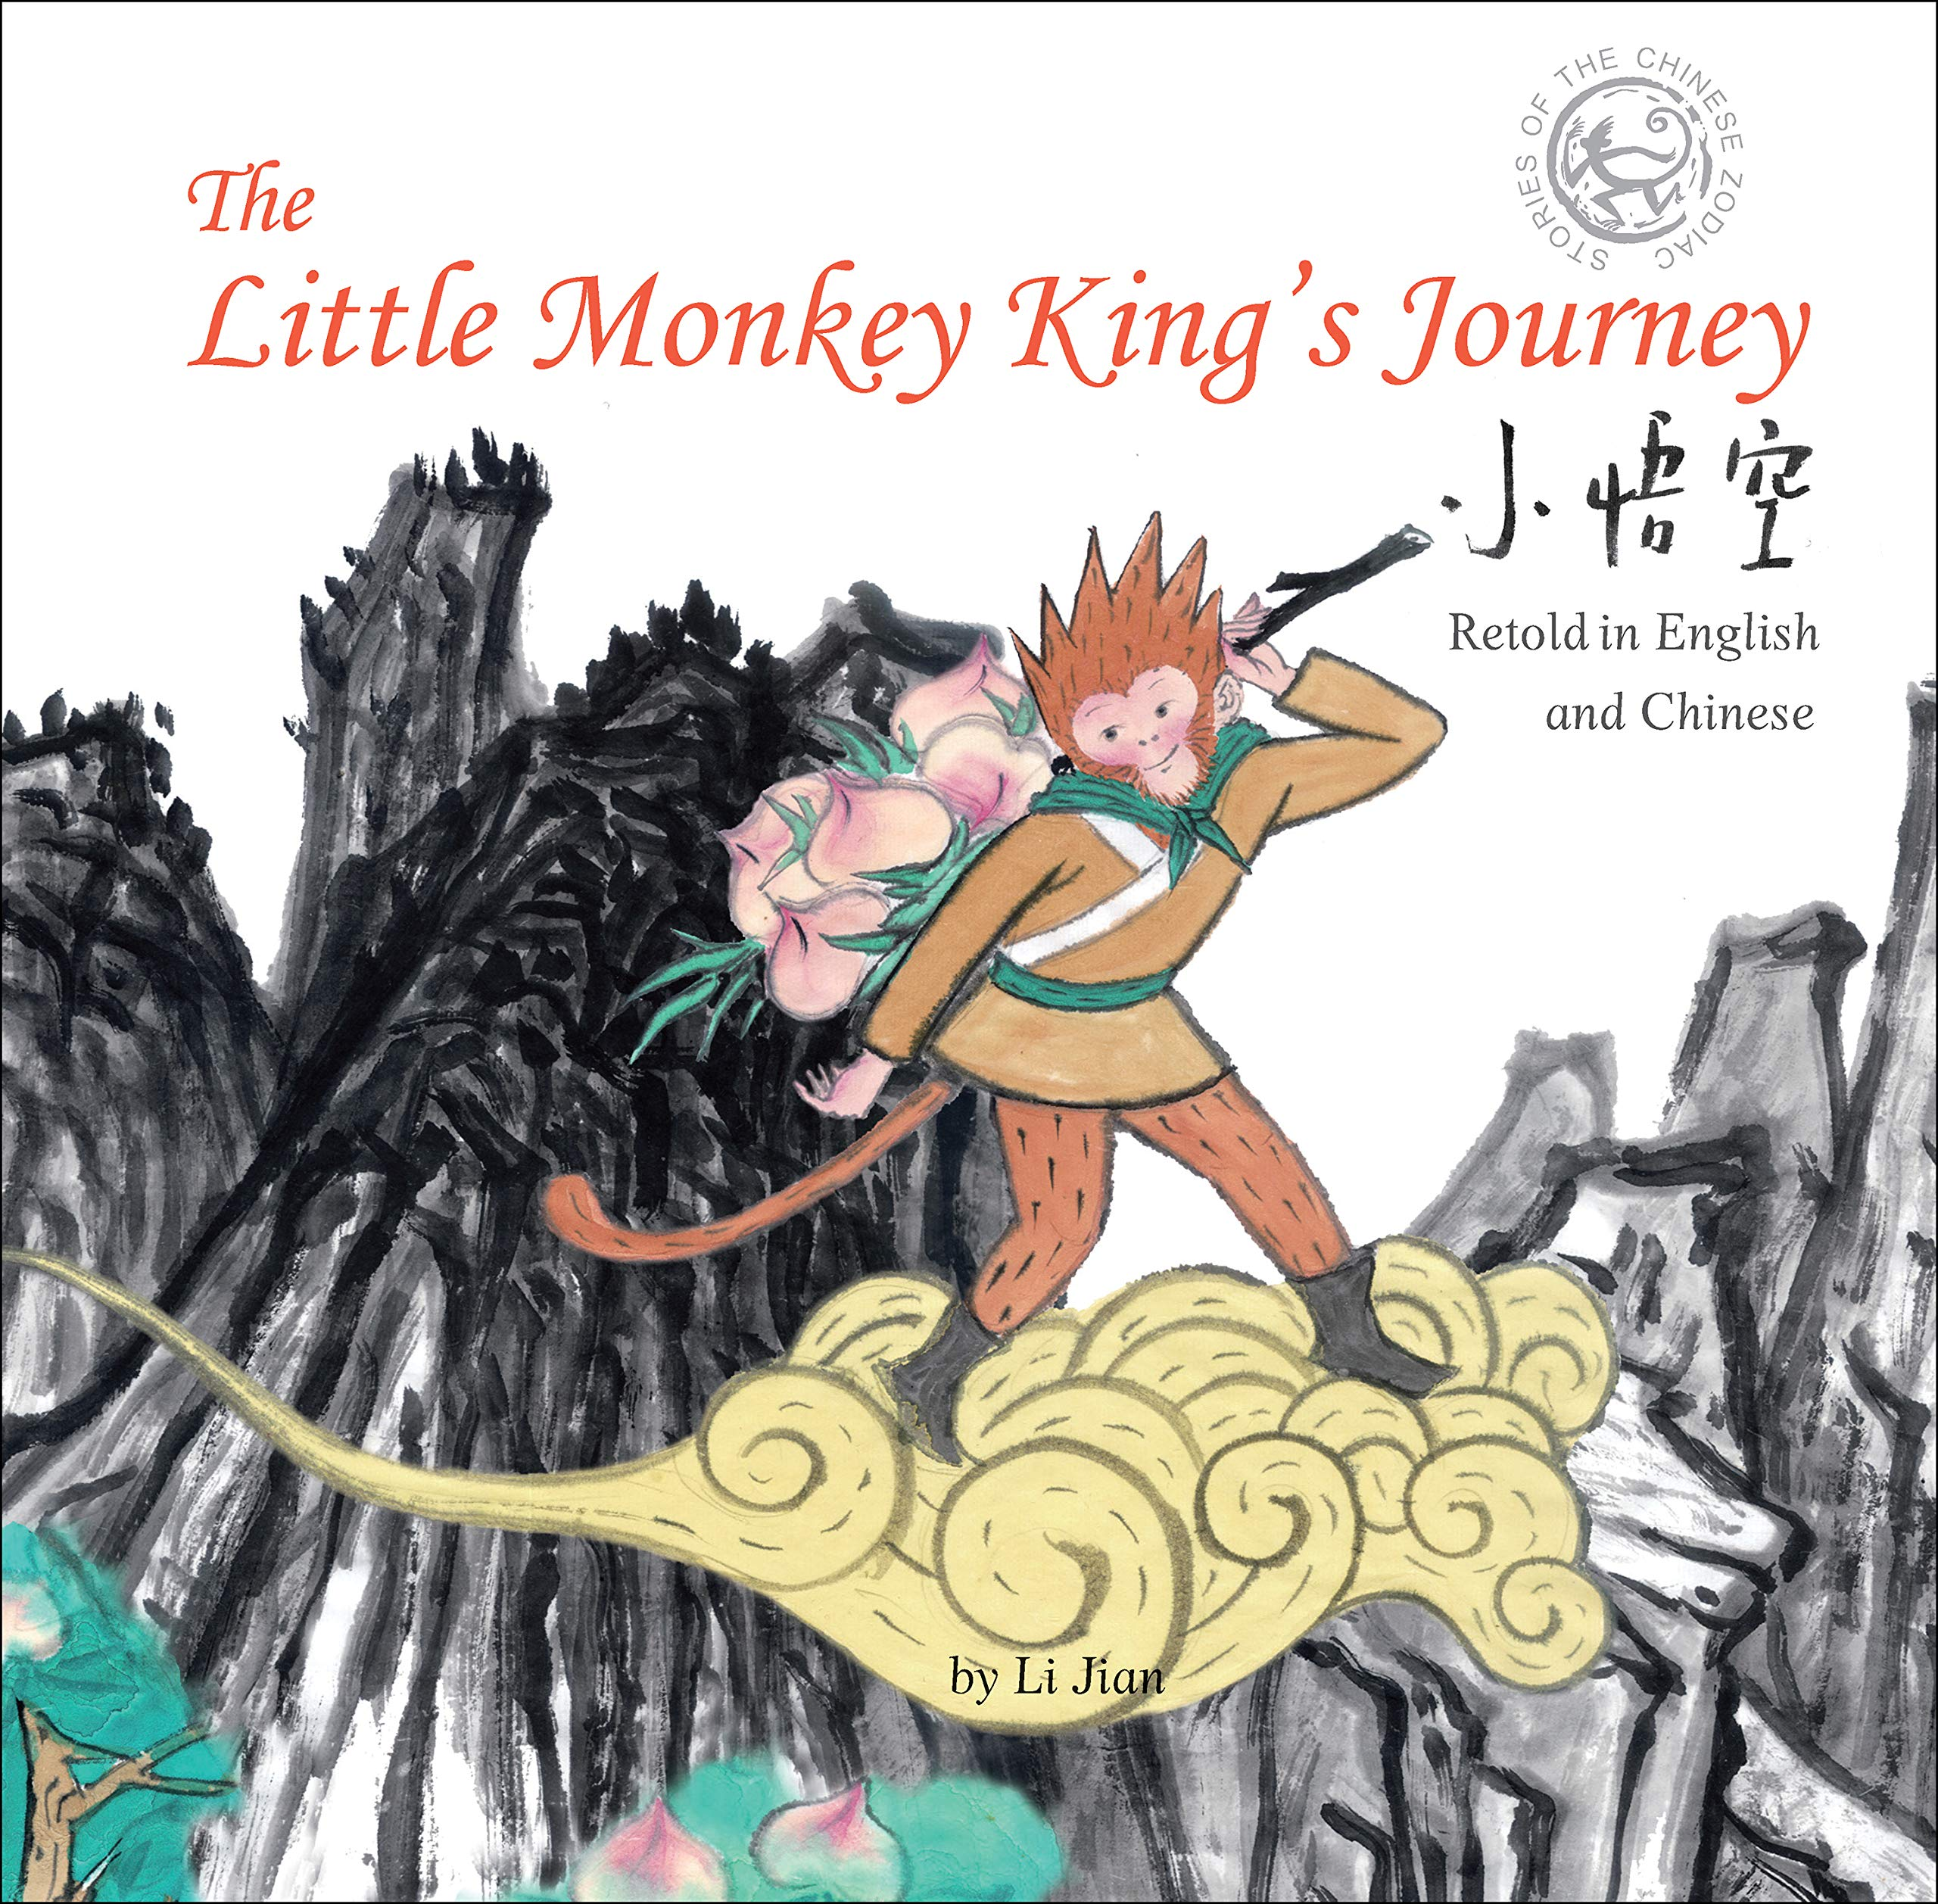 The Little Monkey King's Journey: Retold in English and